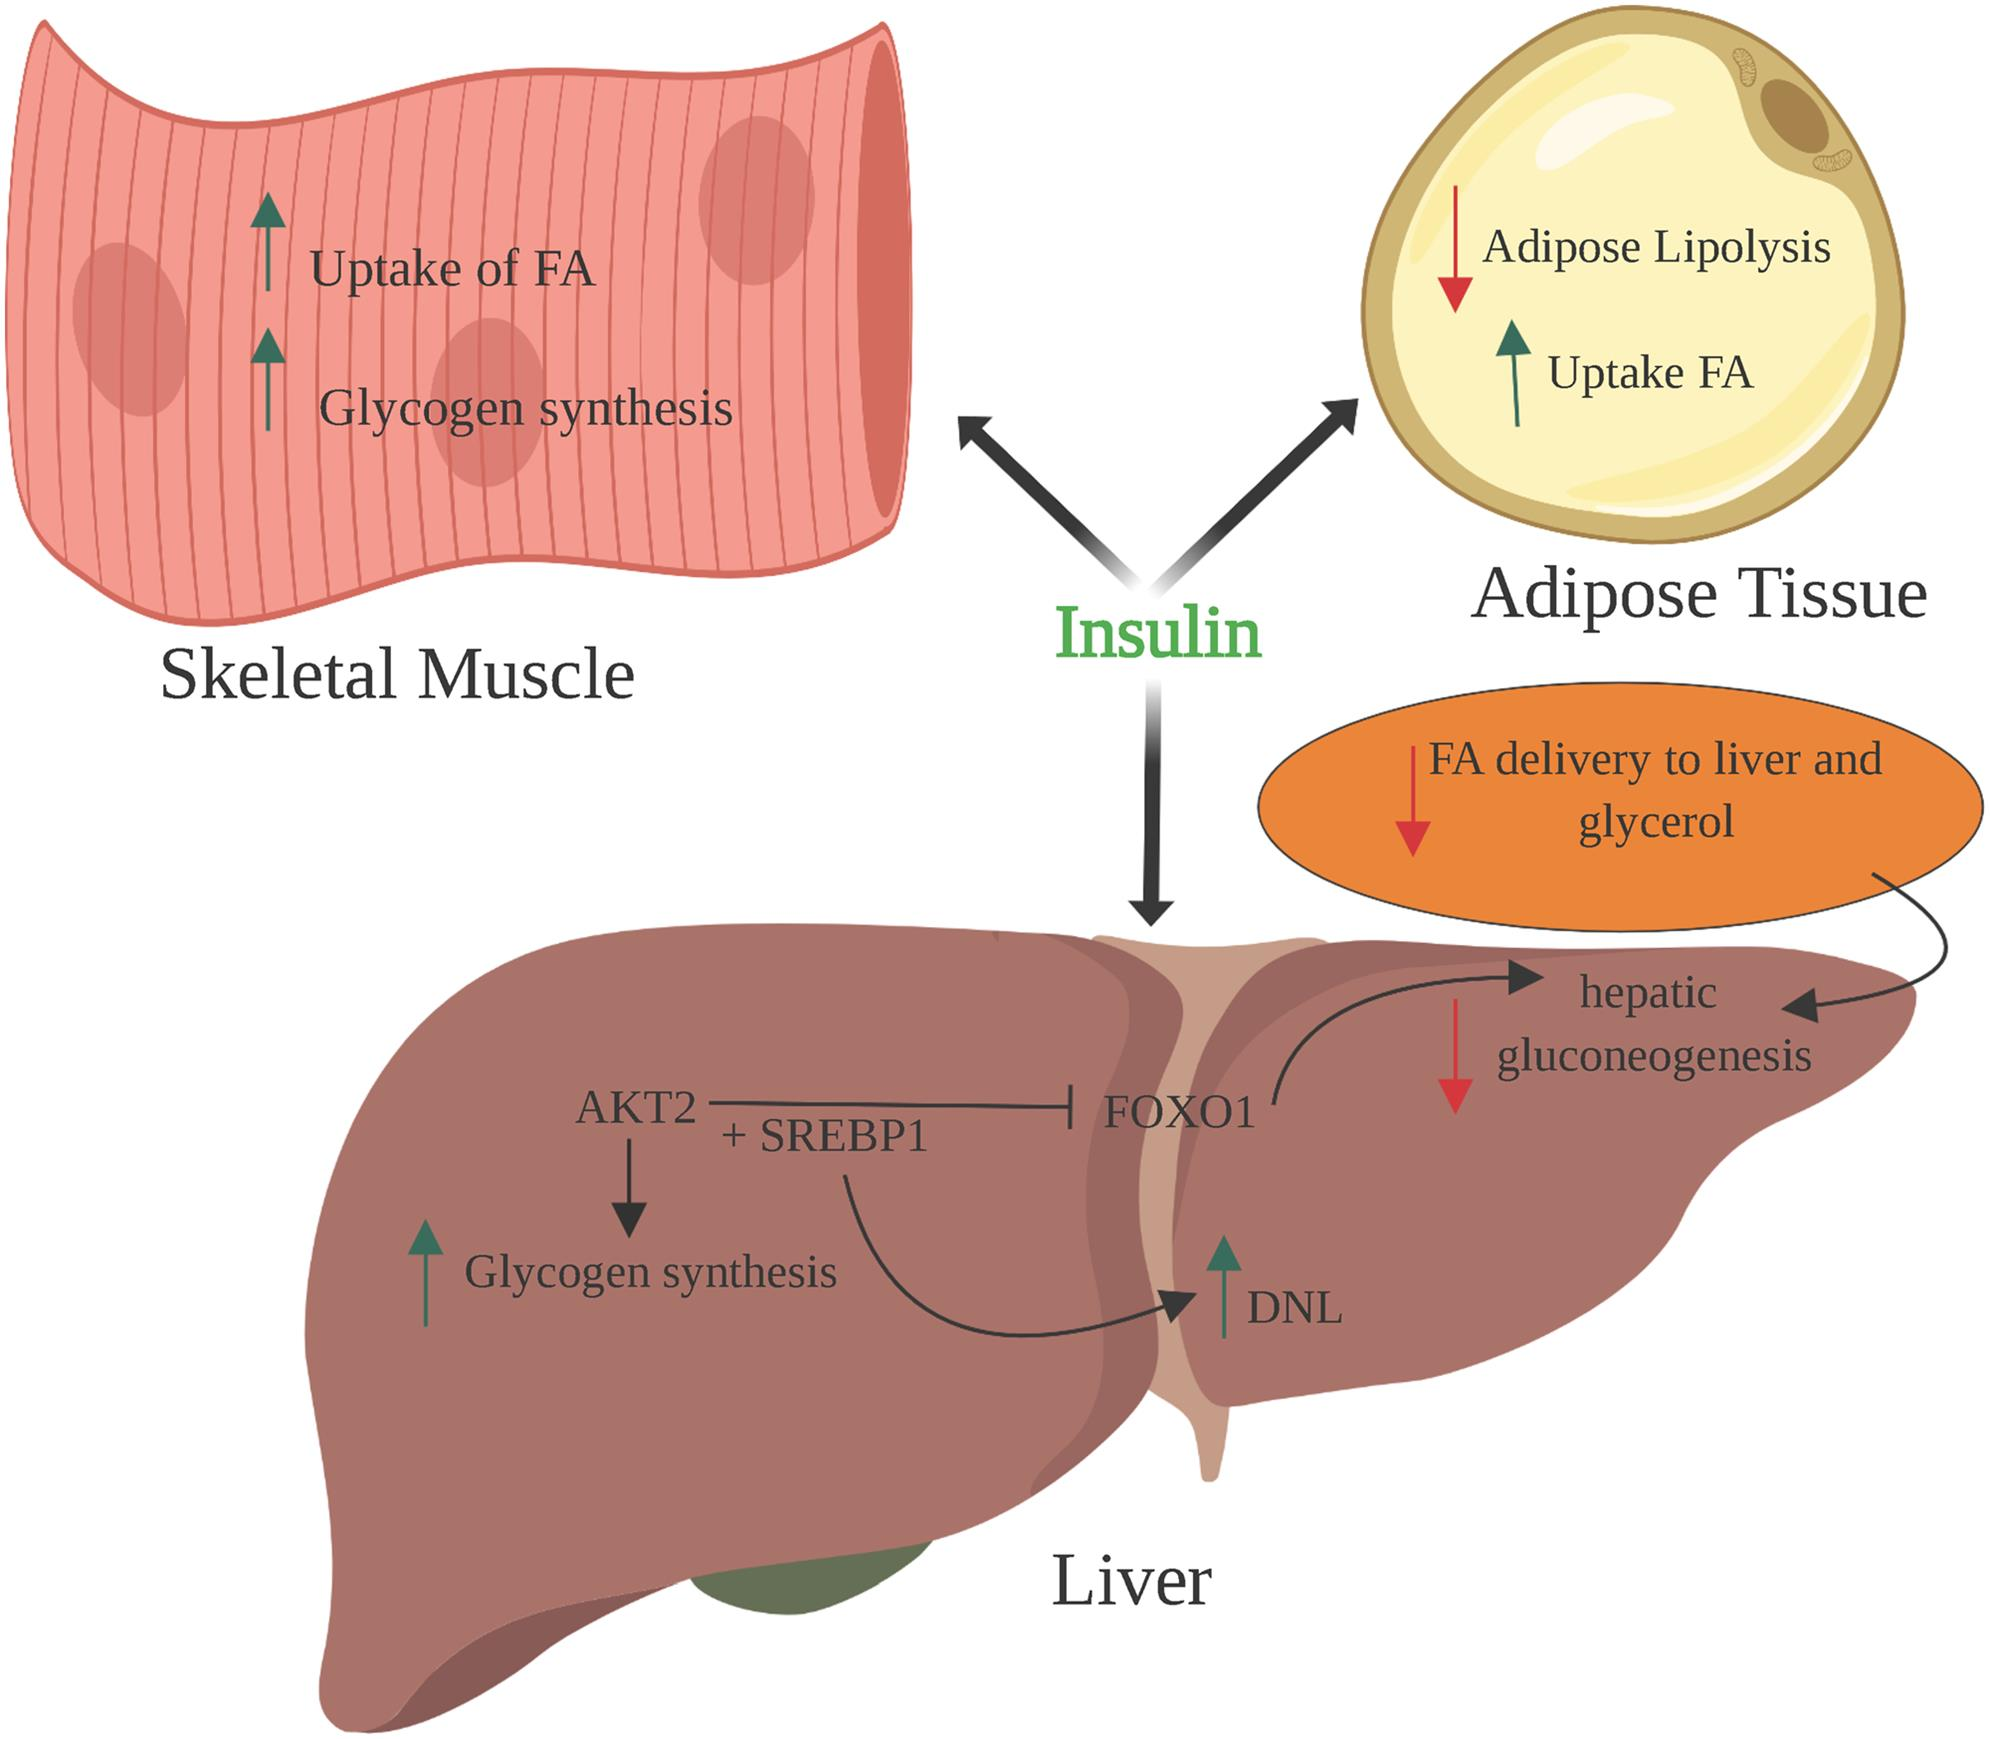 Effects of Insulin on Glucose and Lipid metabolism.